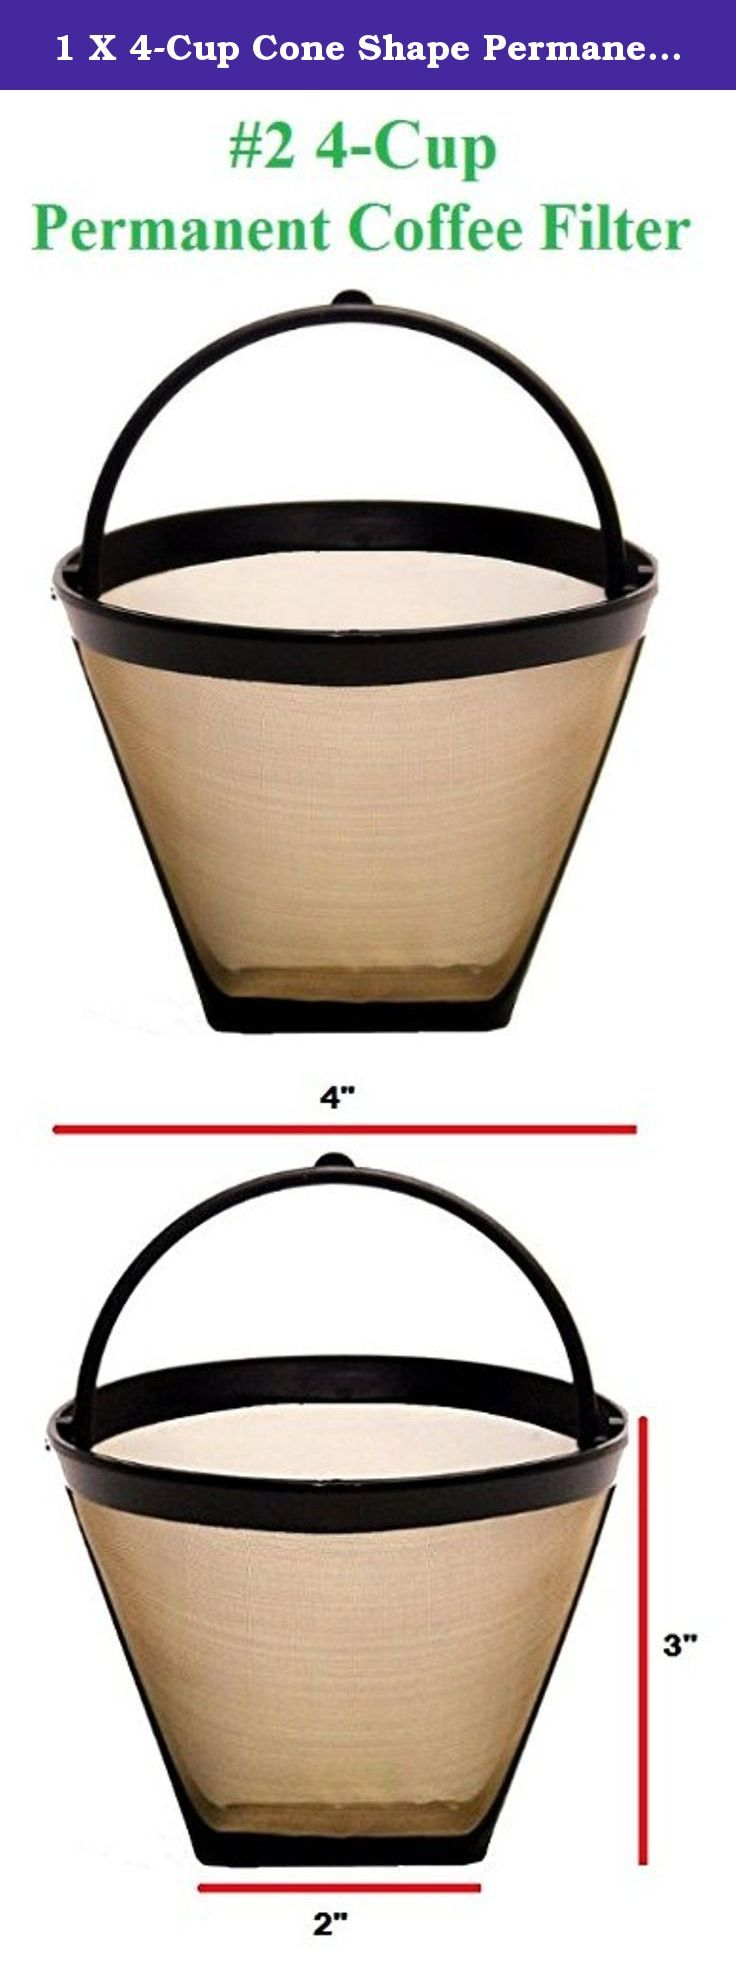 1 X 4Cup Cone Shape Permanent Coffee Filter fits Mr